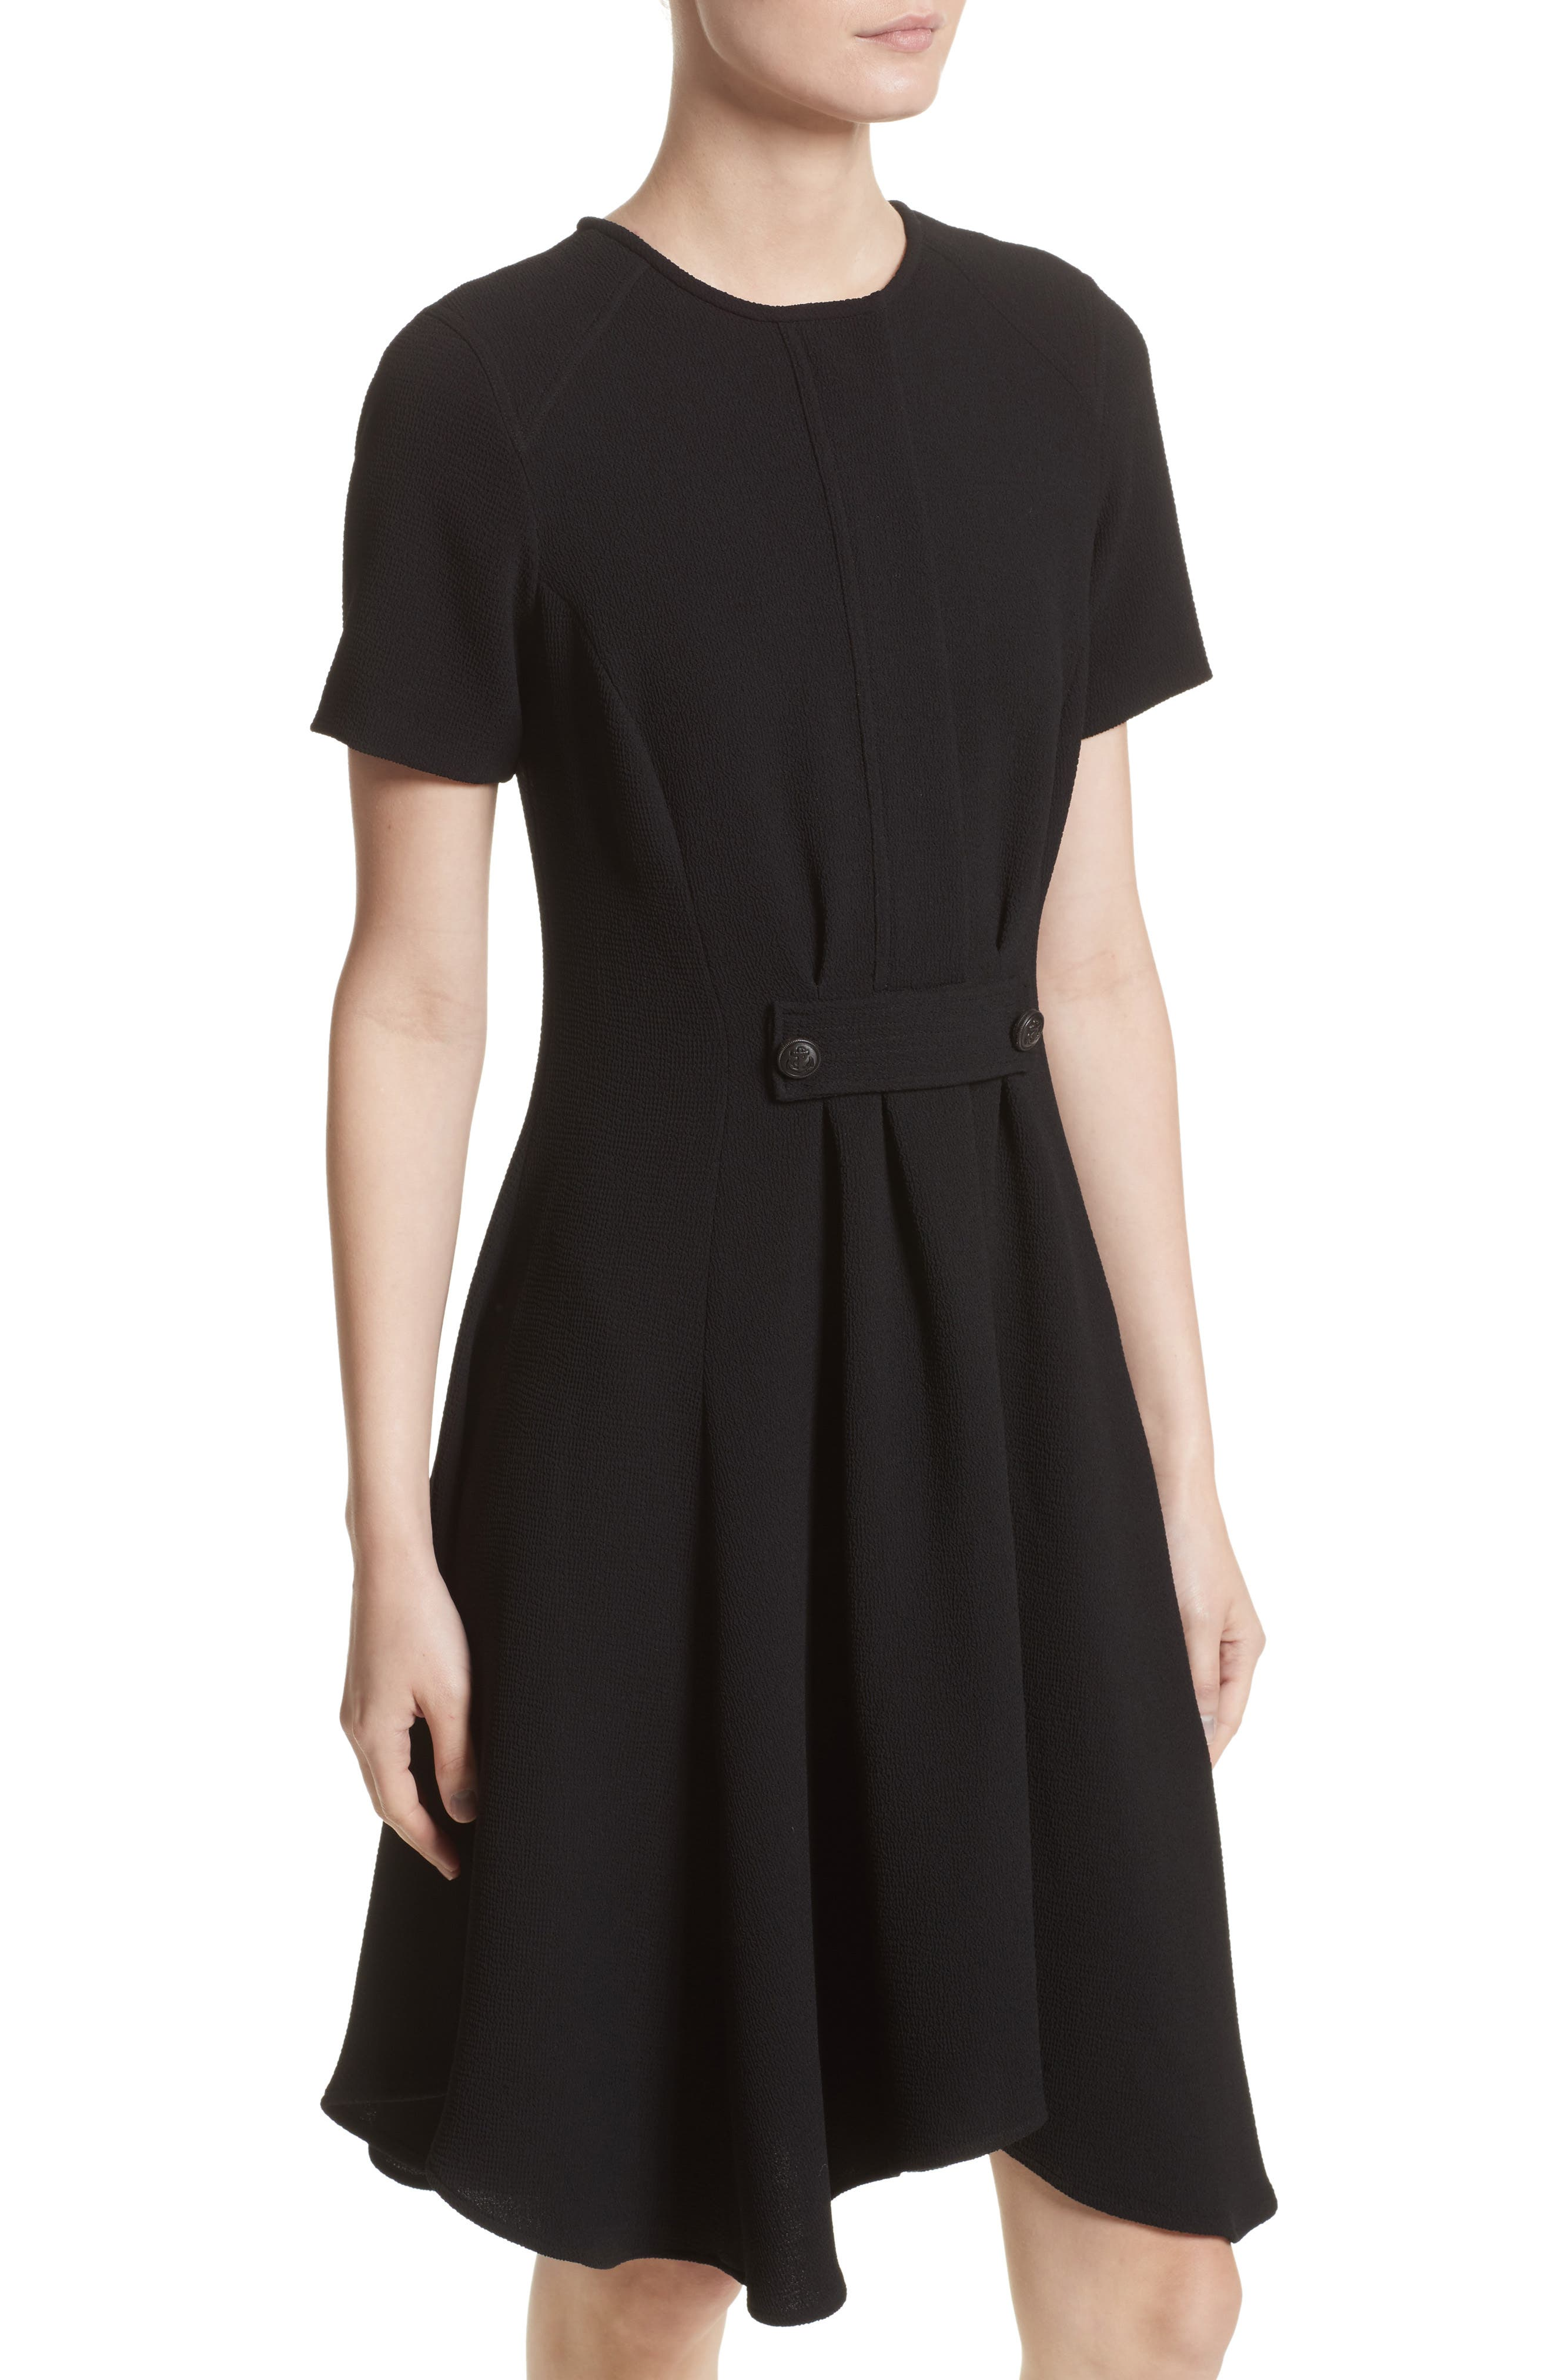 Maressa Dress,                             Alternate thumbnail 7, color,                             Black